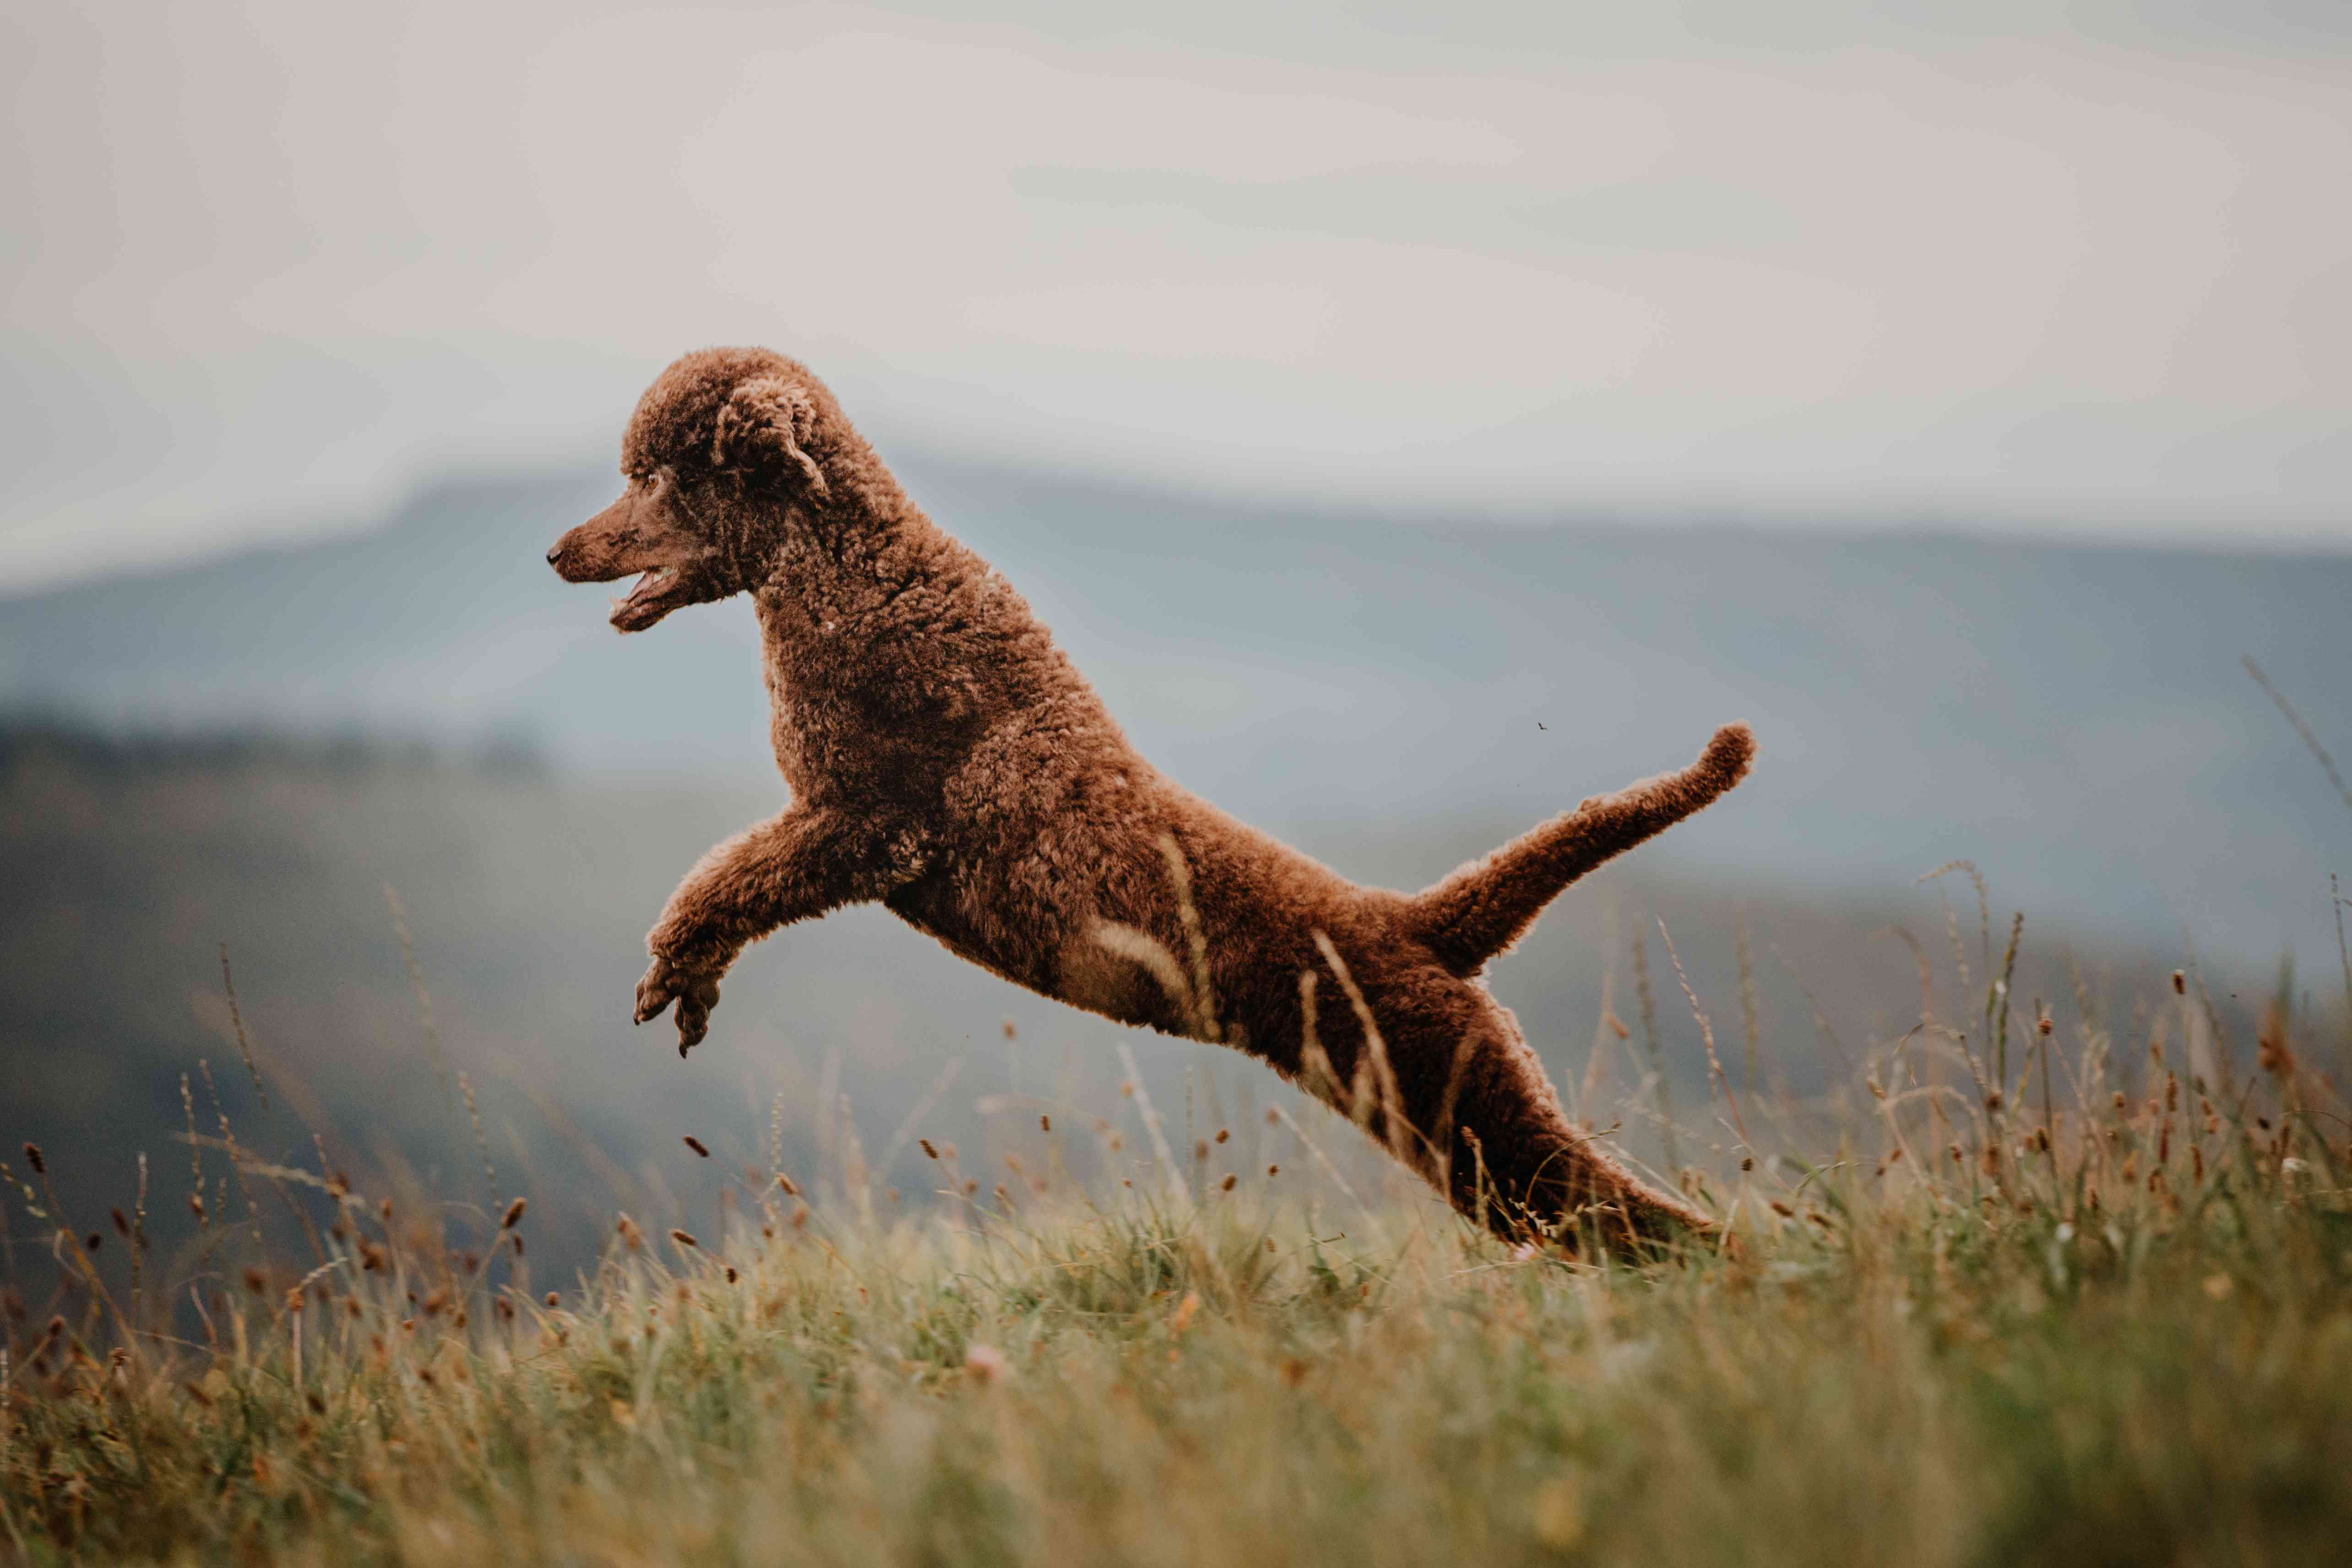 A brown Poodle jumping in the grass.